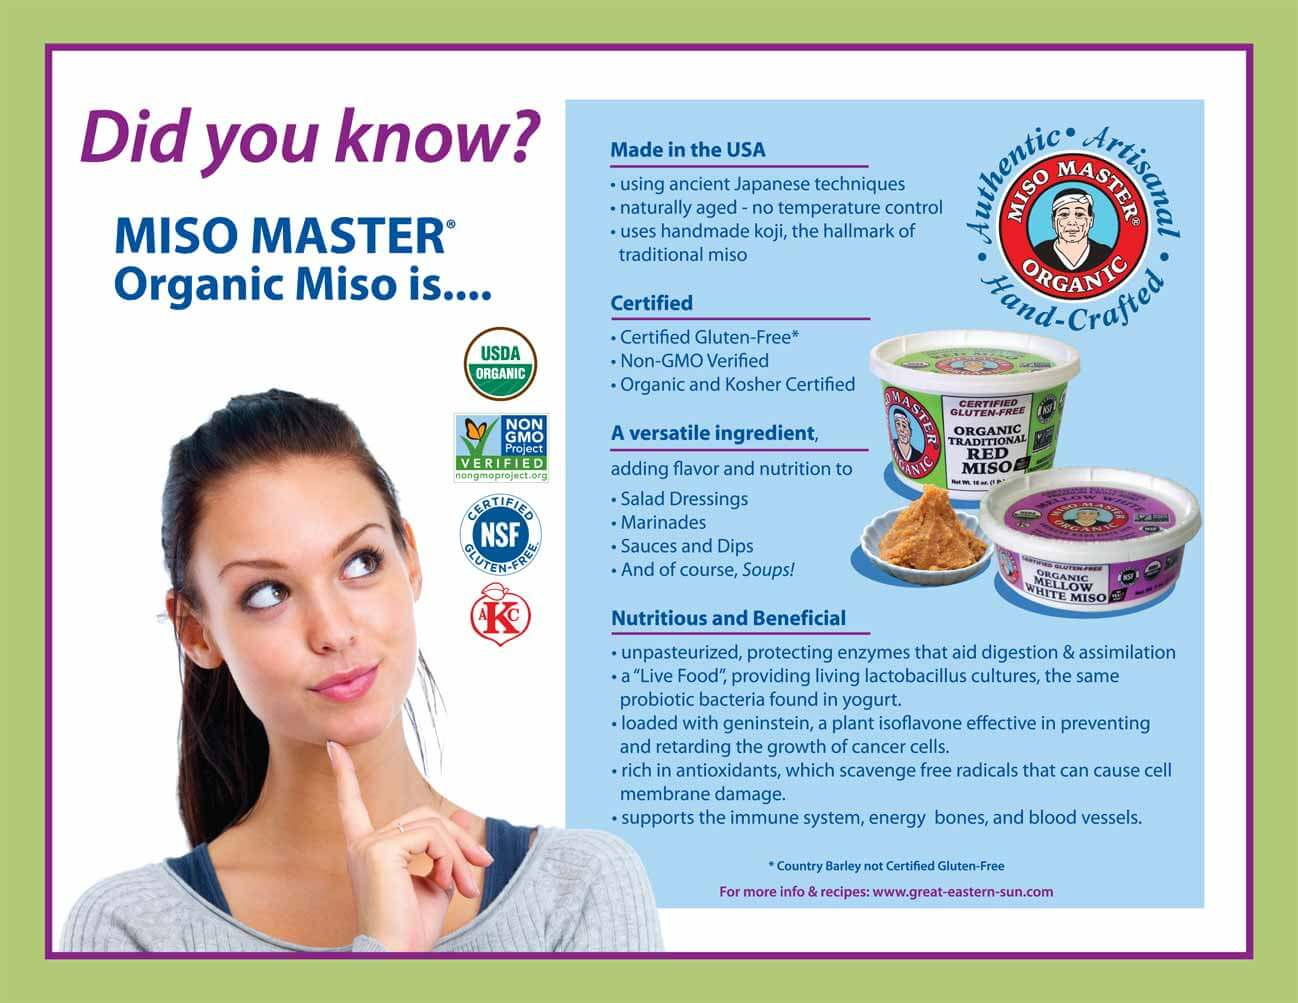 Did You Know This About Miso?